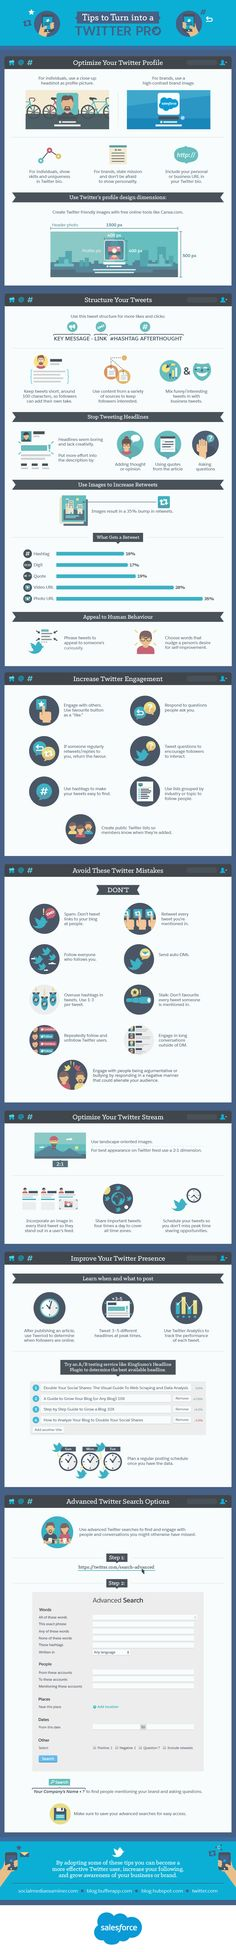 Twitter Tips to Turn You into a Twitter Pro